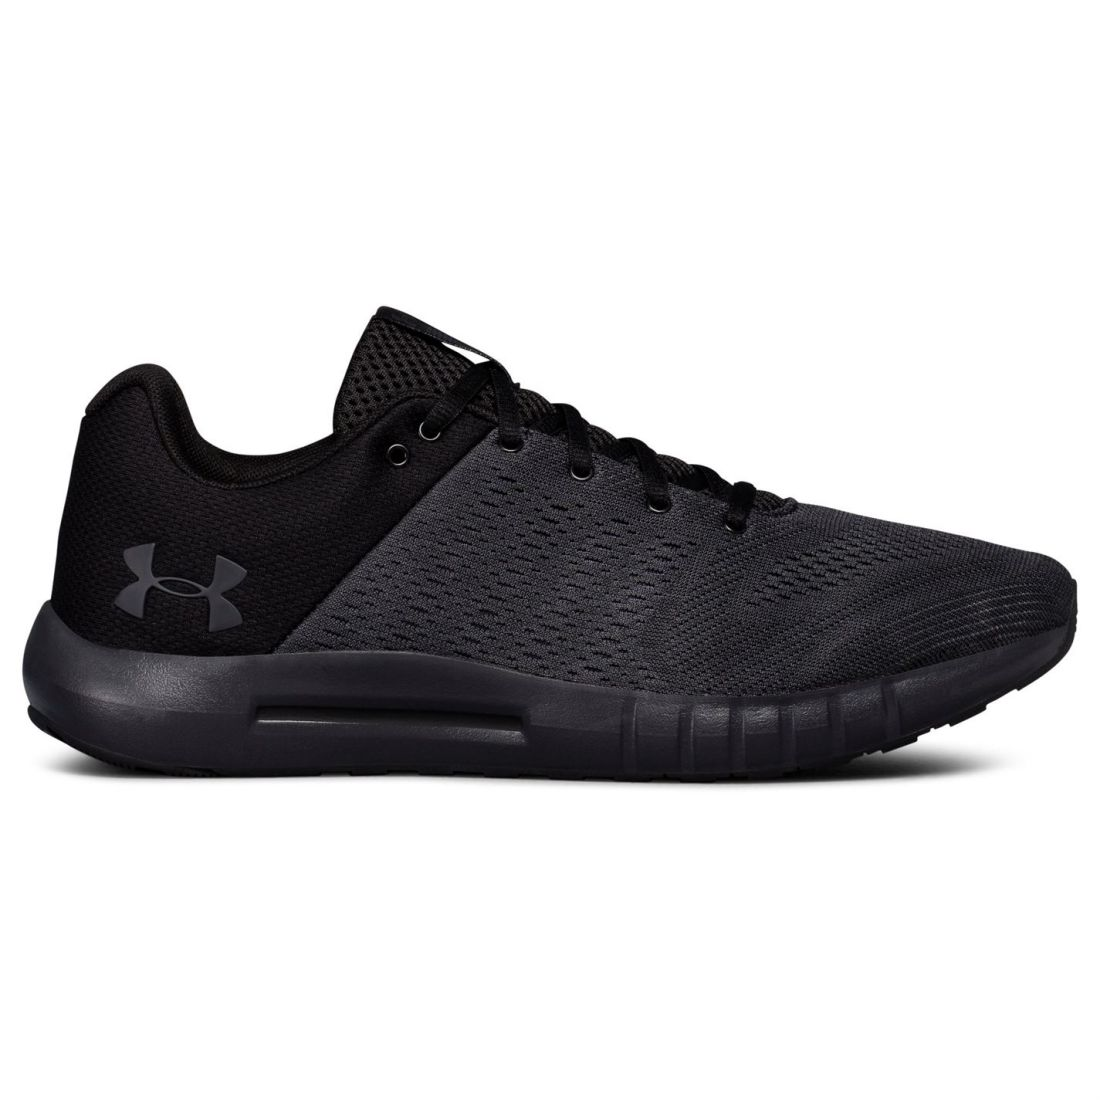 066a72f6cb47c Under Armour Mens Micro G Pursuit Trainers Sports Shoes Lace Up ...